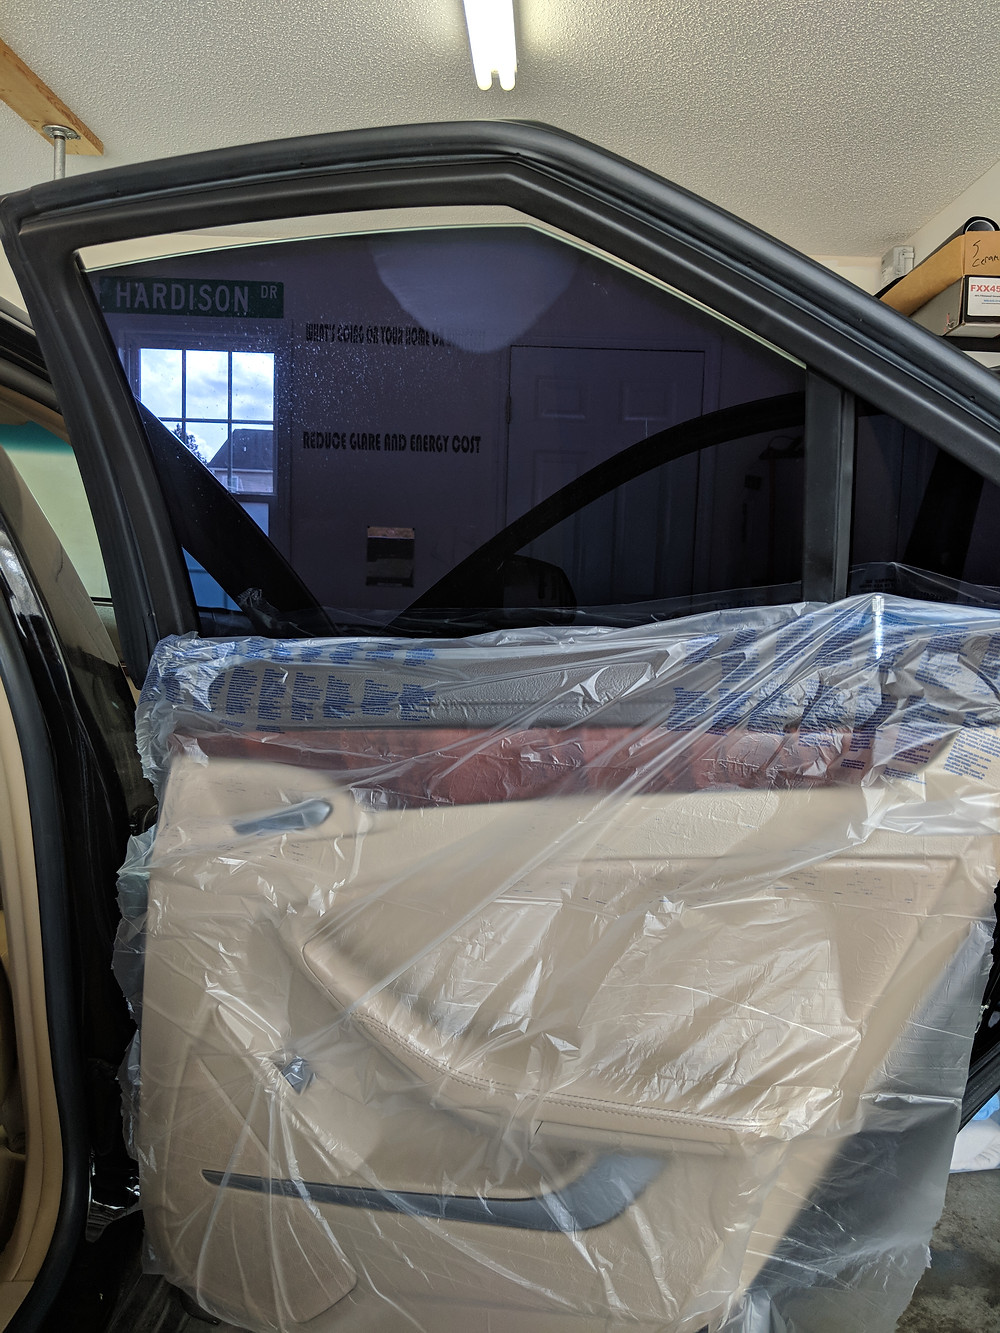 NC window tint law